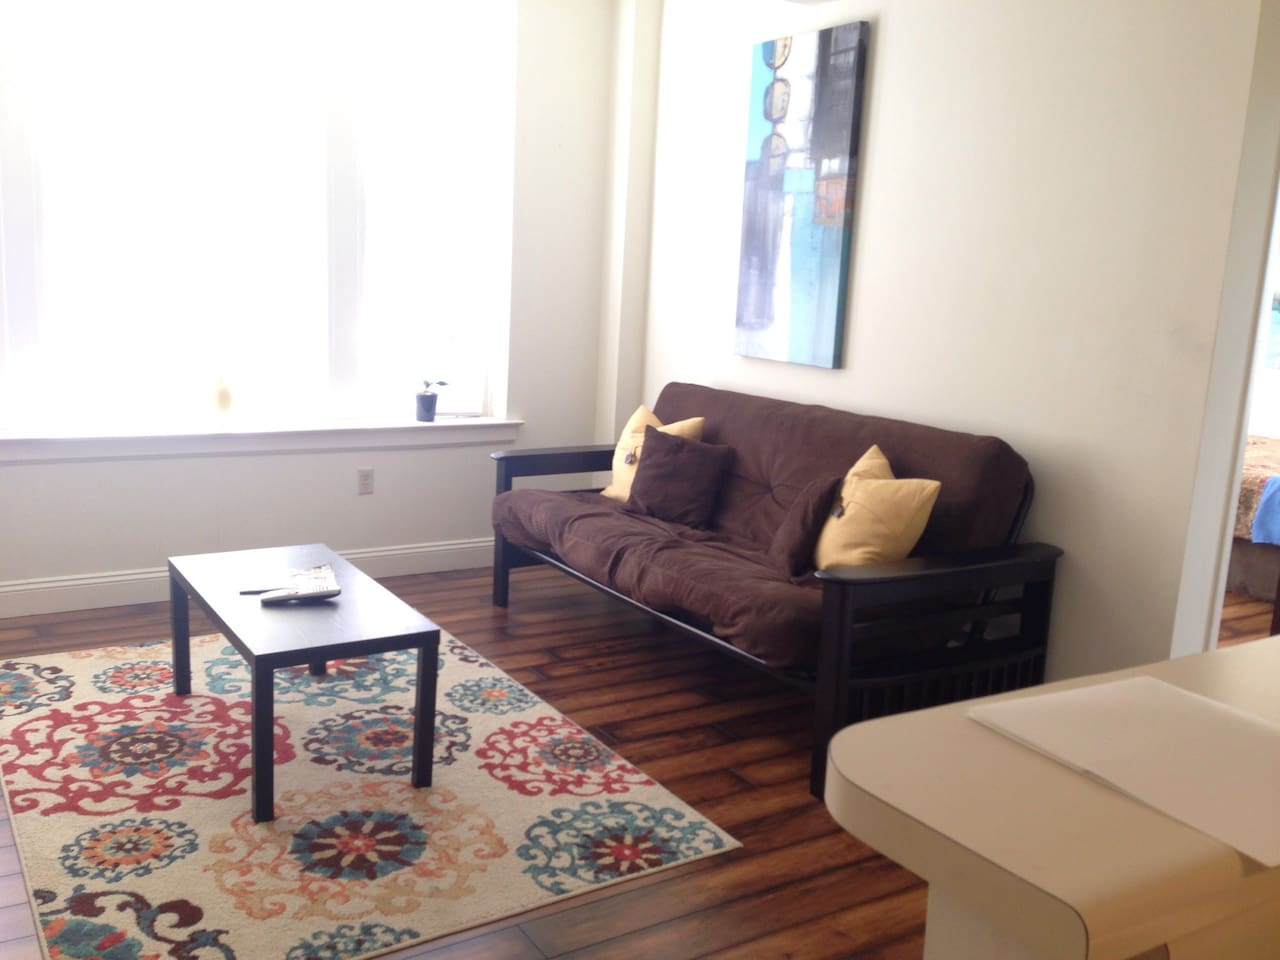 Renovated apartment with hardwood floors, futon in living room